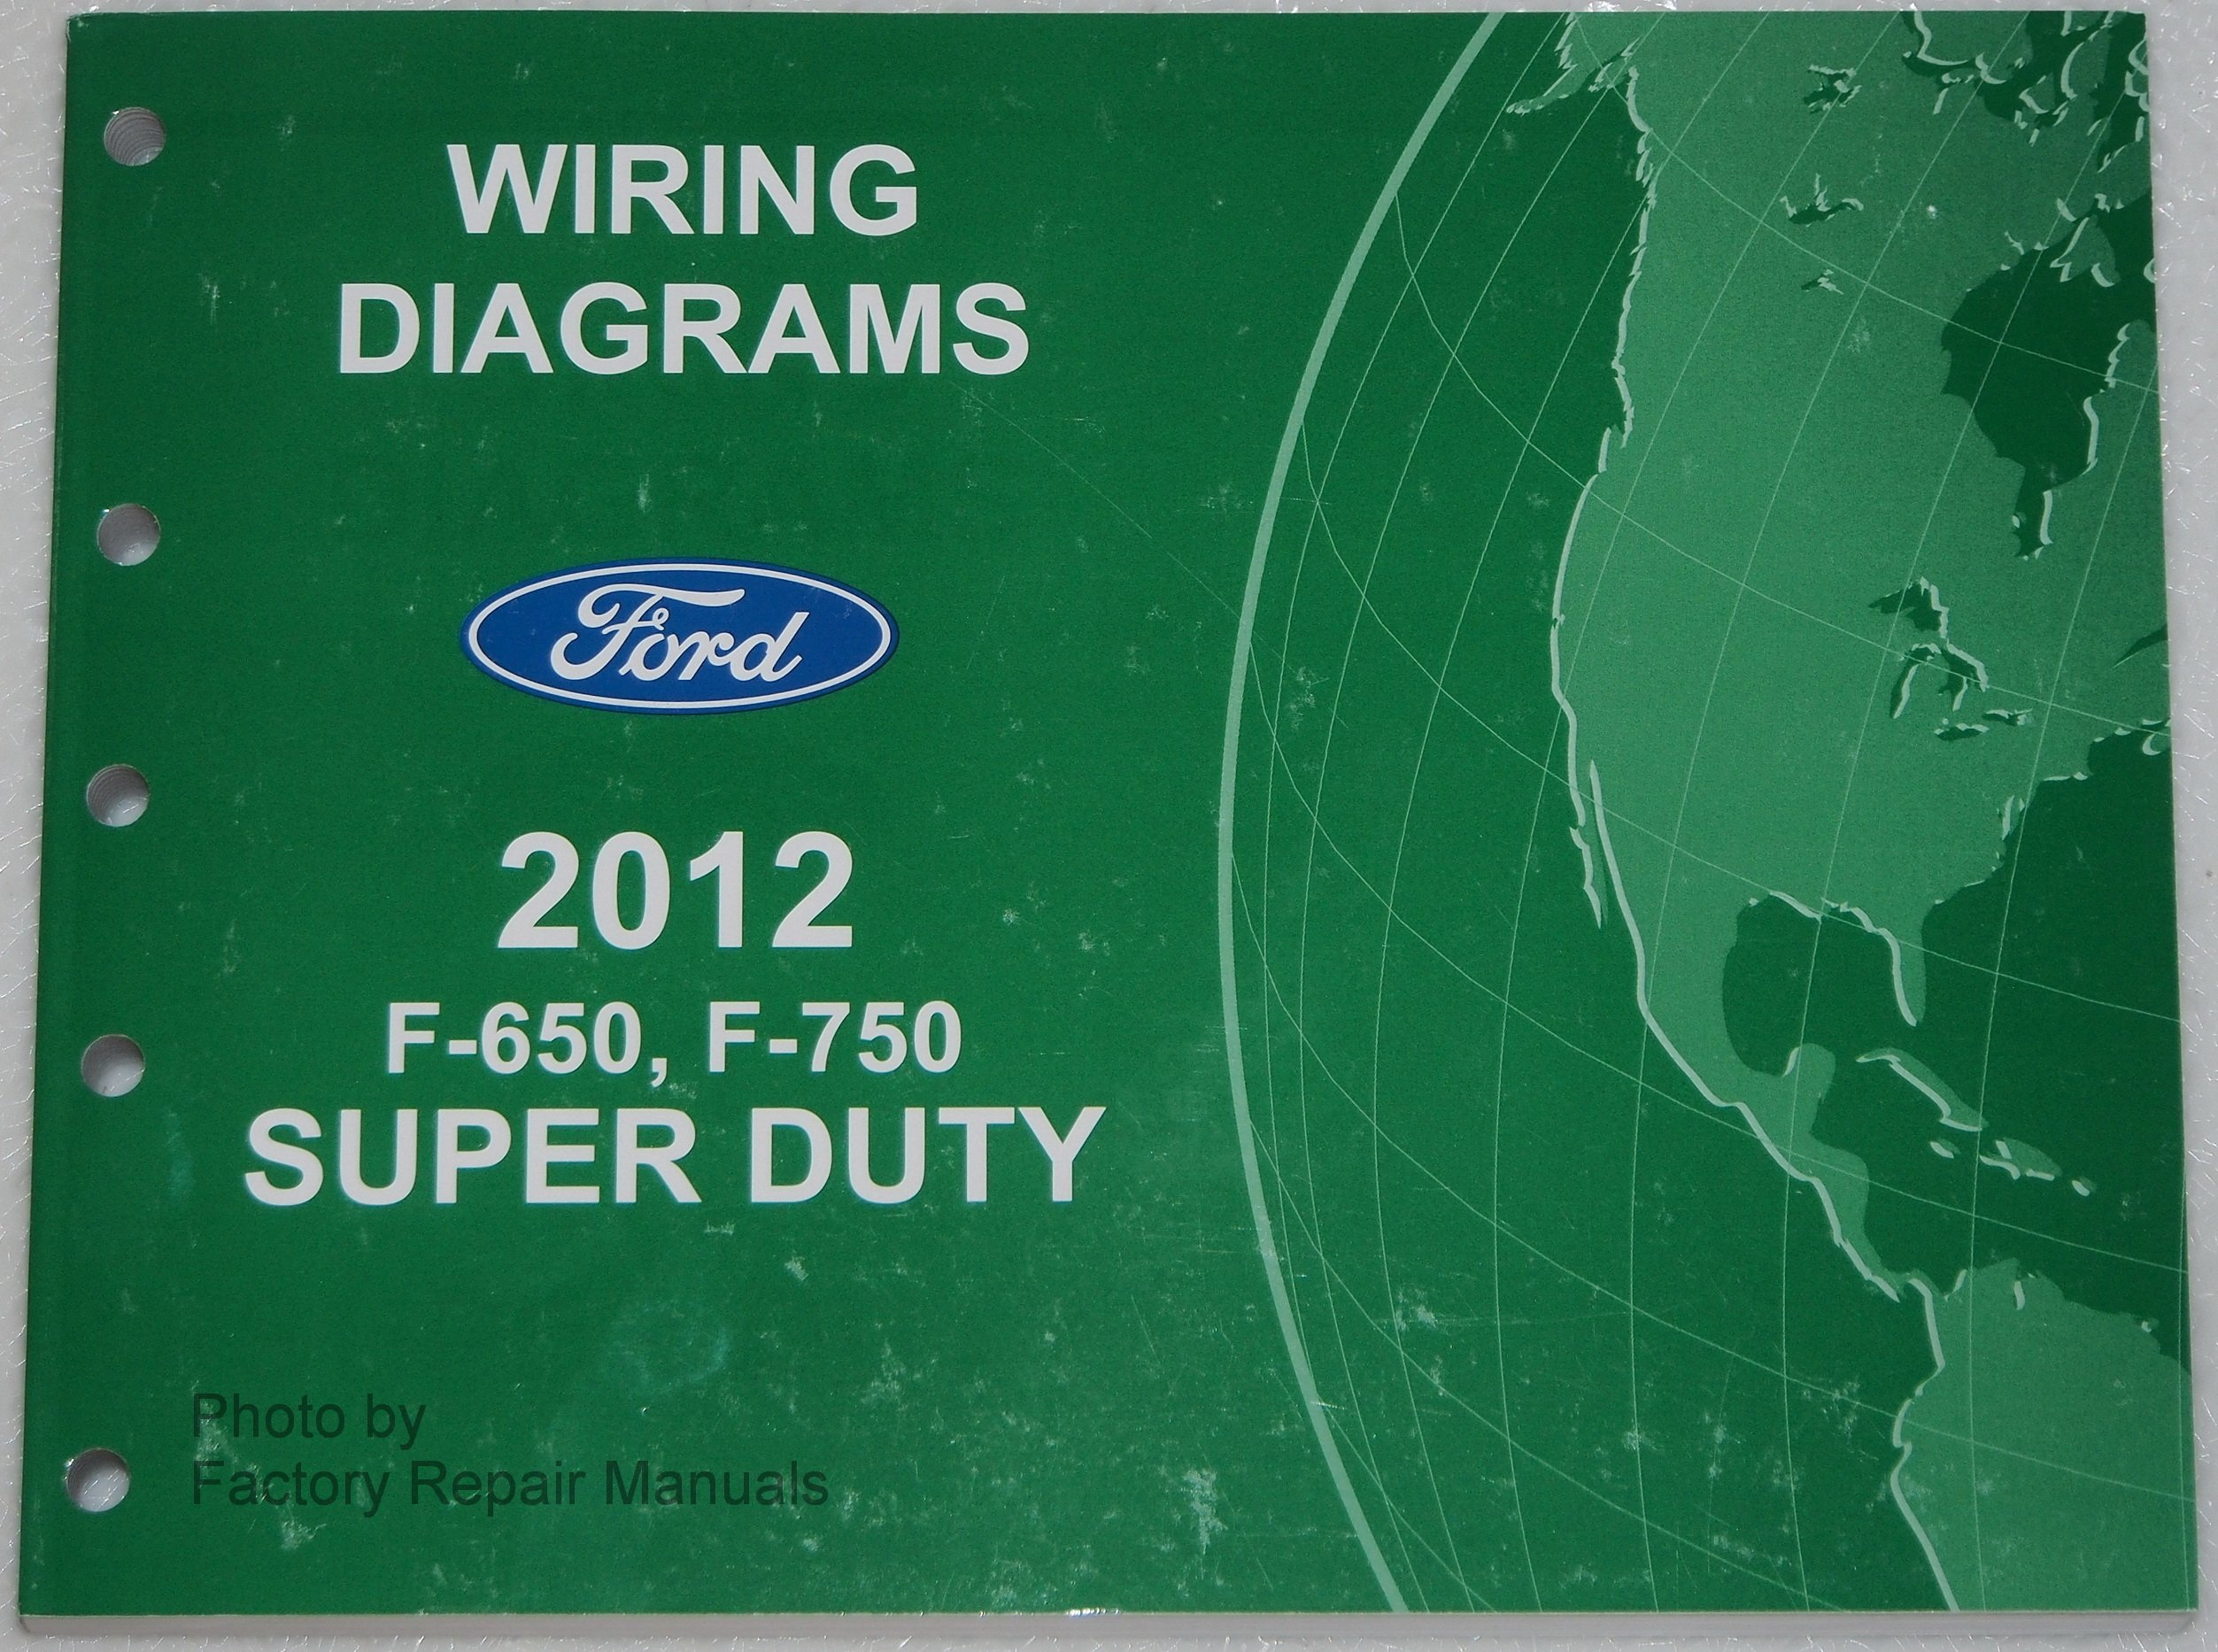 91KkFIScY%2BL 2012 f650 f750 wiring diagram ford motor company amazon com books 2013 ford wiring diagram at nearapp.co